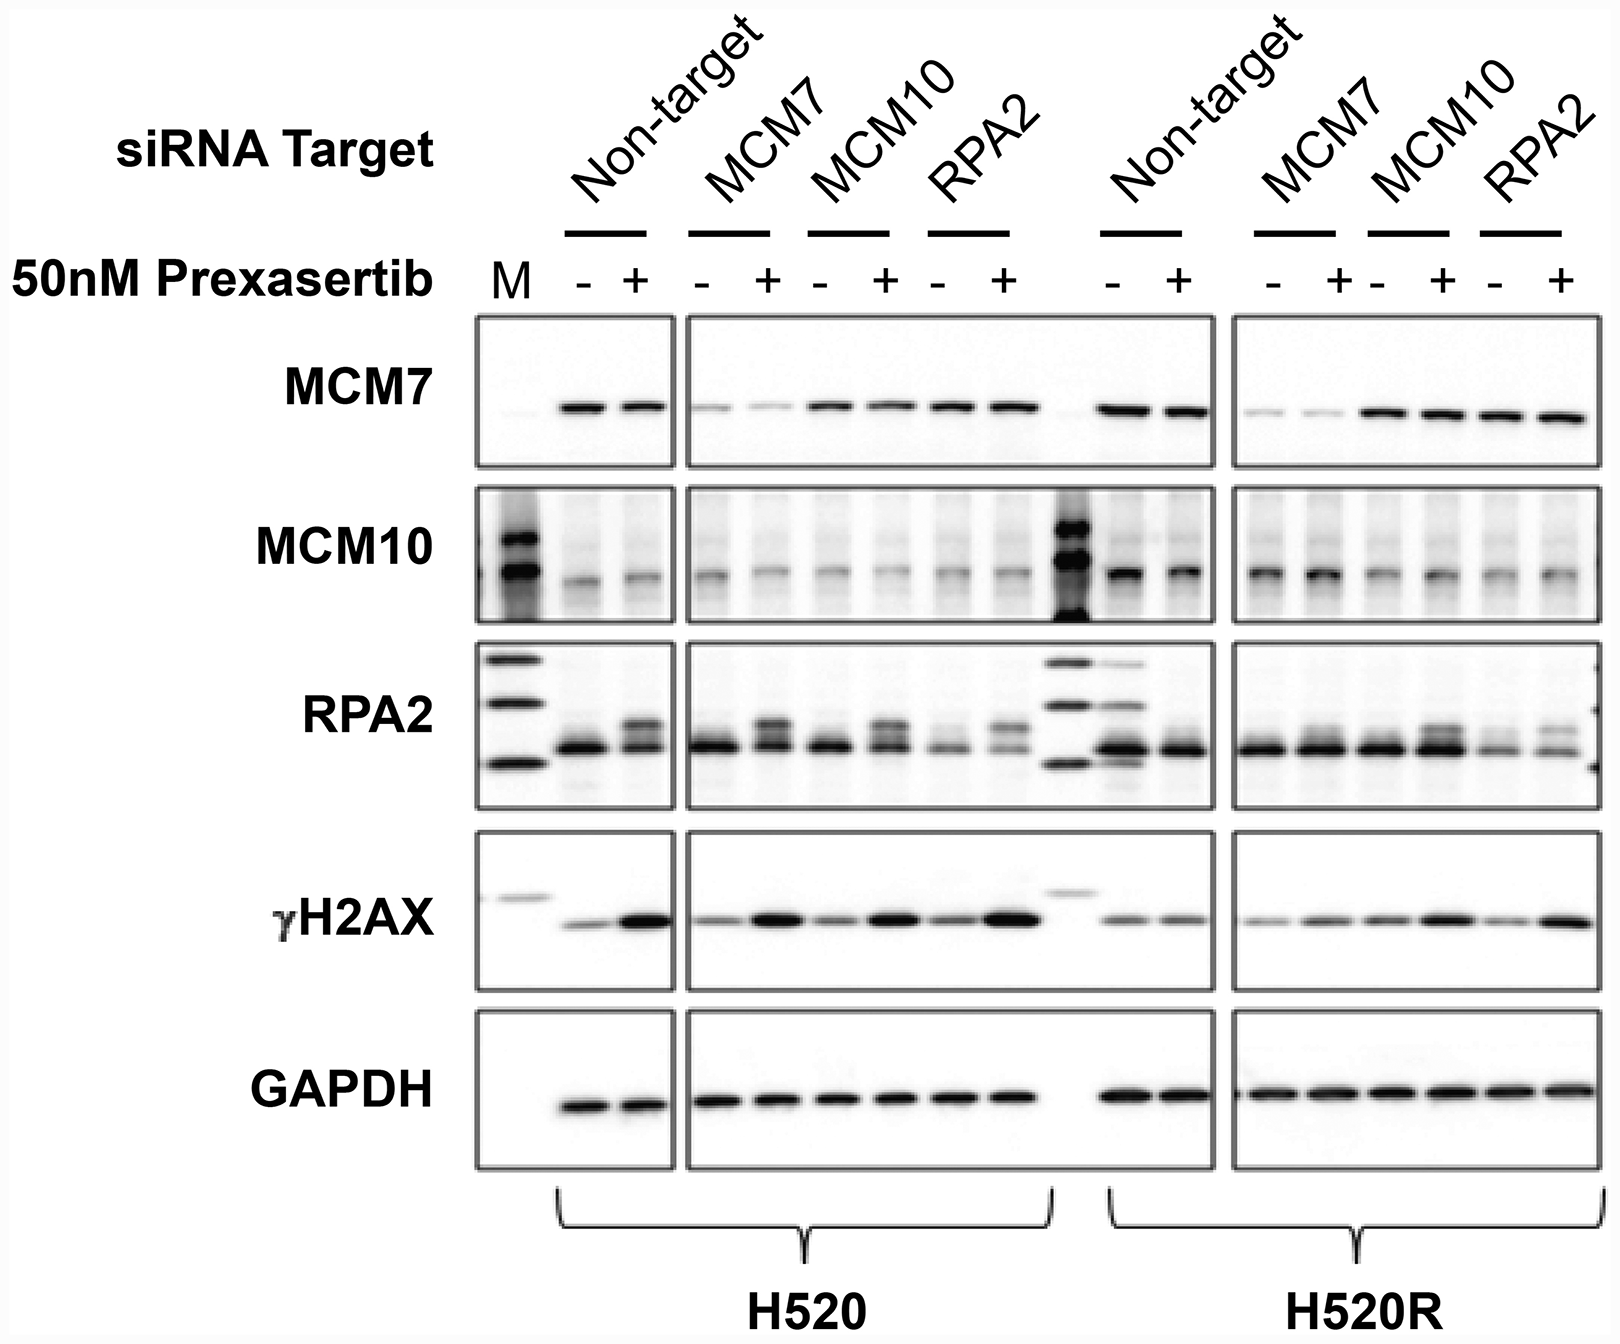 Effect of key replication fork gene knockdown on markers for replication stress and DNA damage measured in extracts derived from parental and prexasertib-resistant NCI-H520 tumor lines.